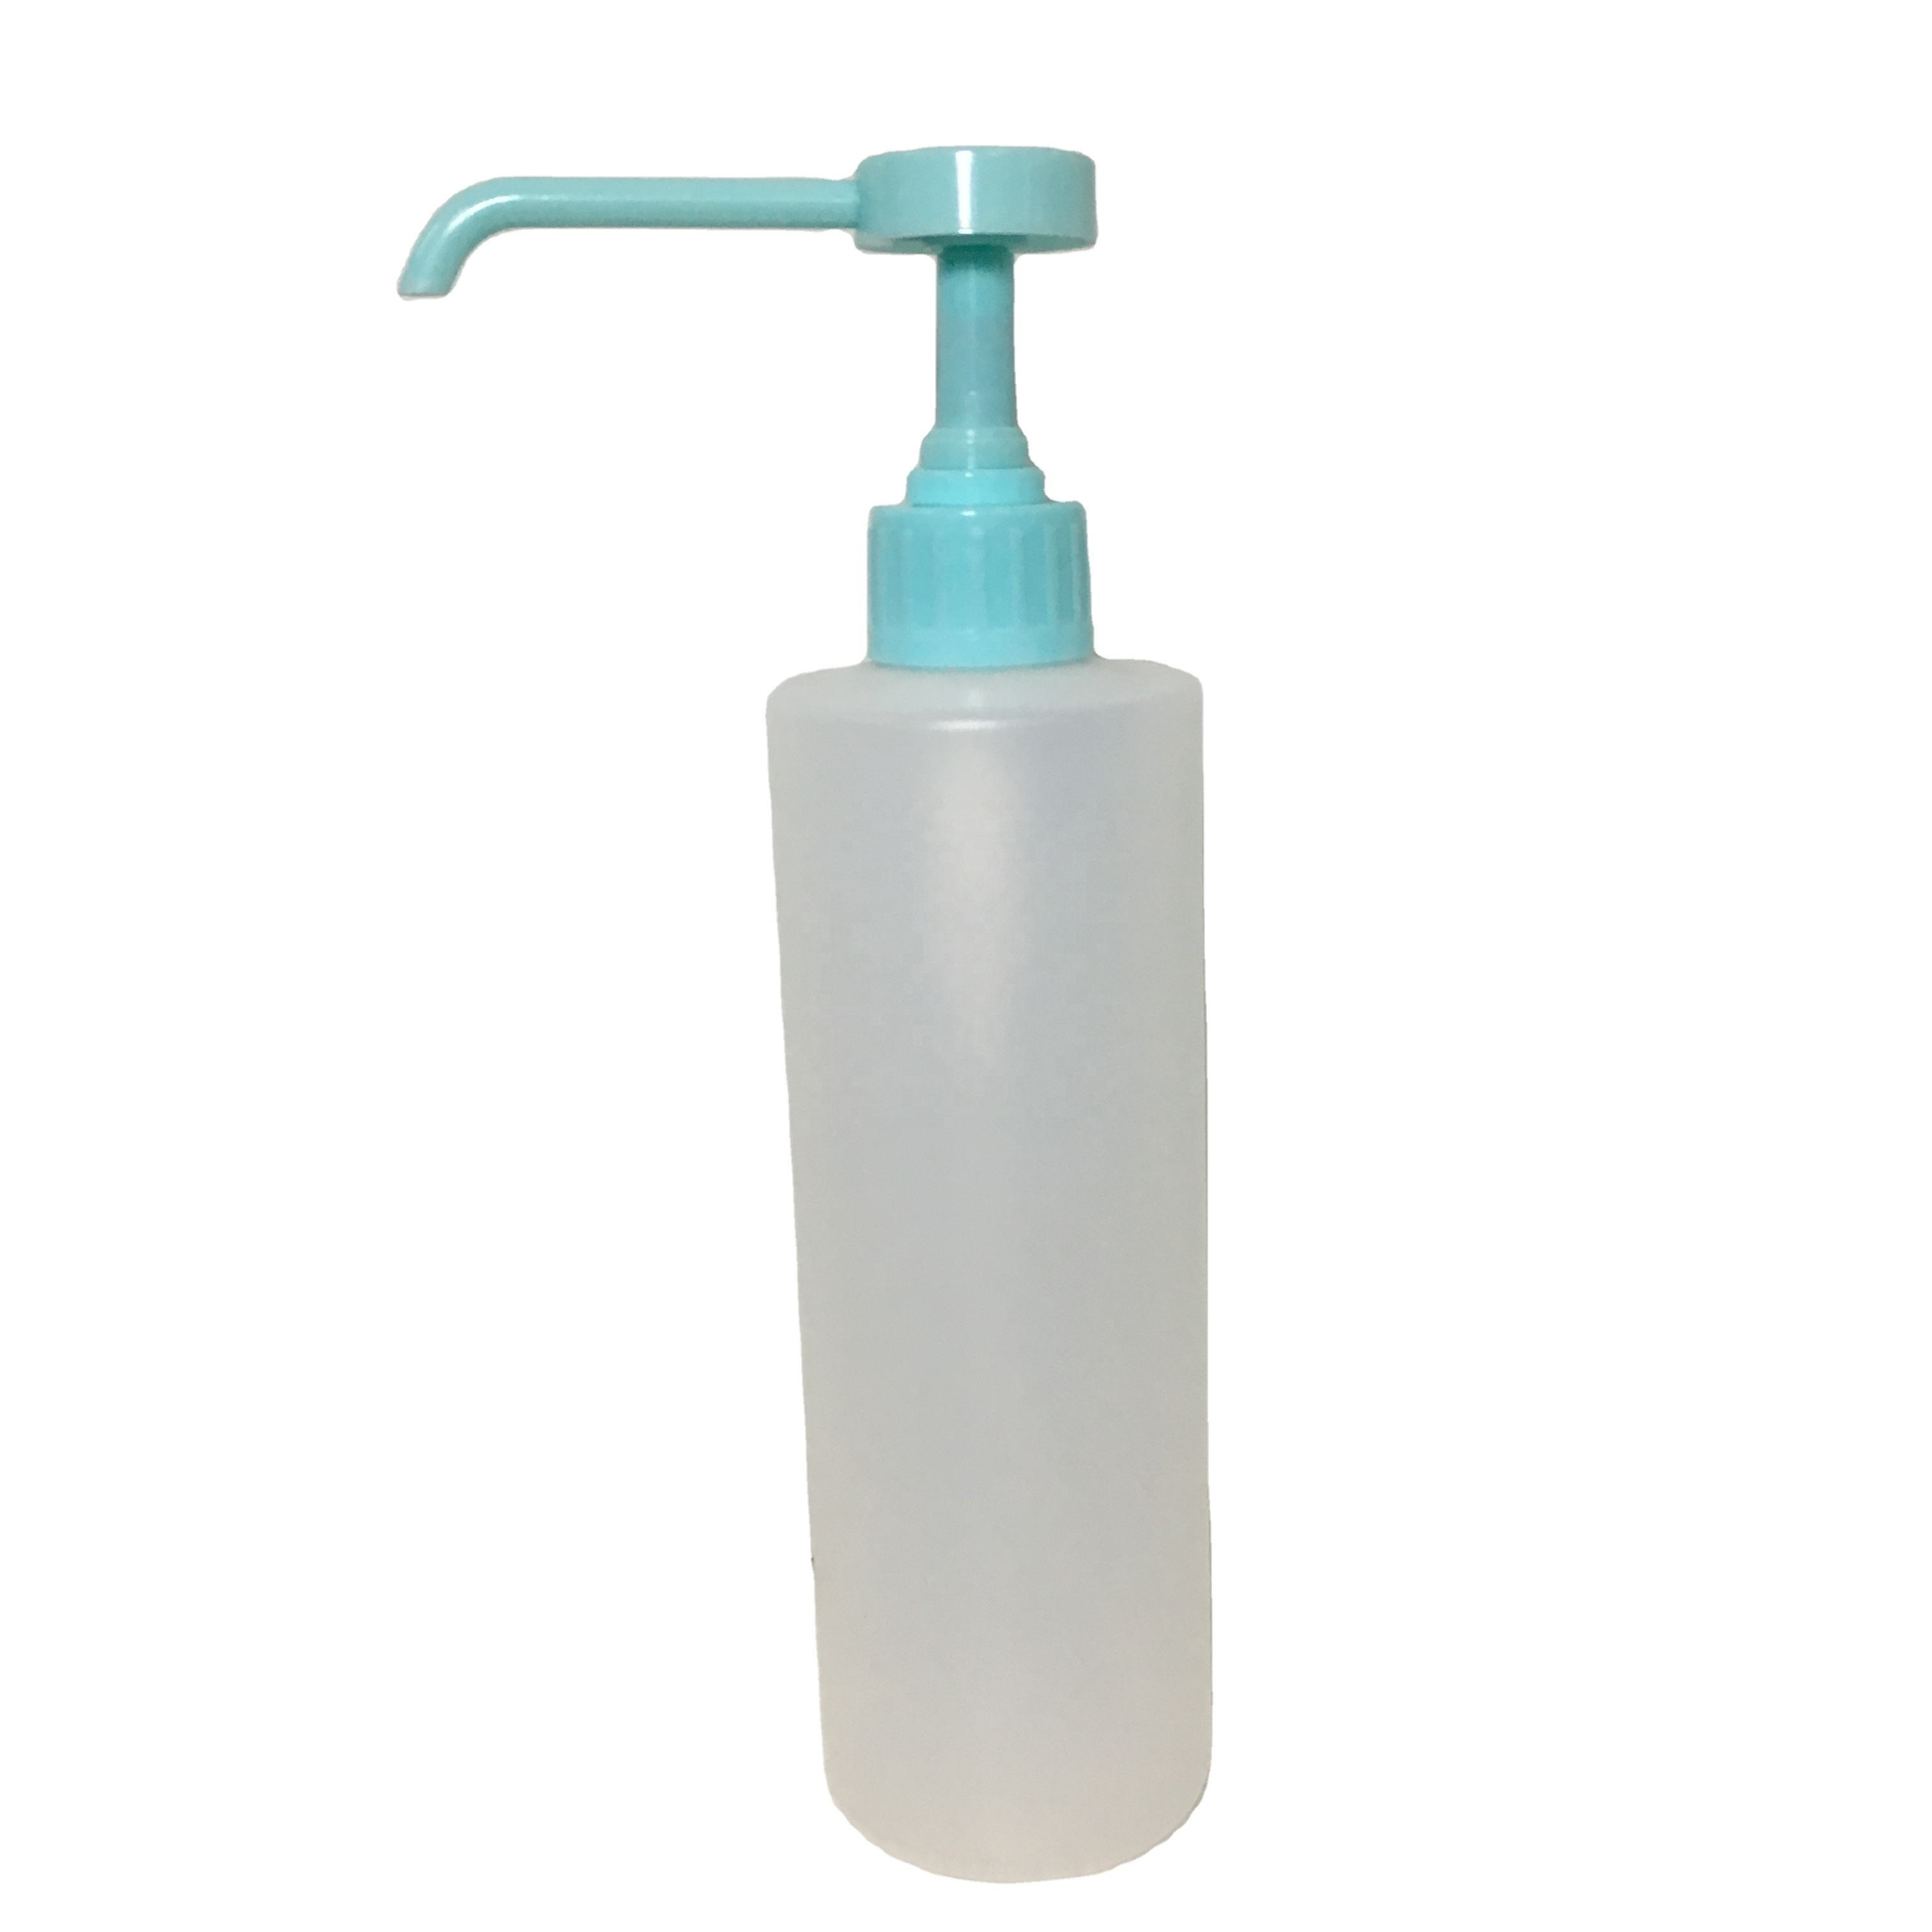 28-410,30-410,32-410 Plastic white long nozzle soap lotion dispenser pump,medical lotion sprayer pump